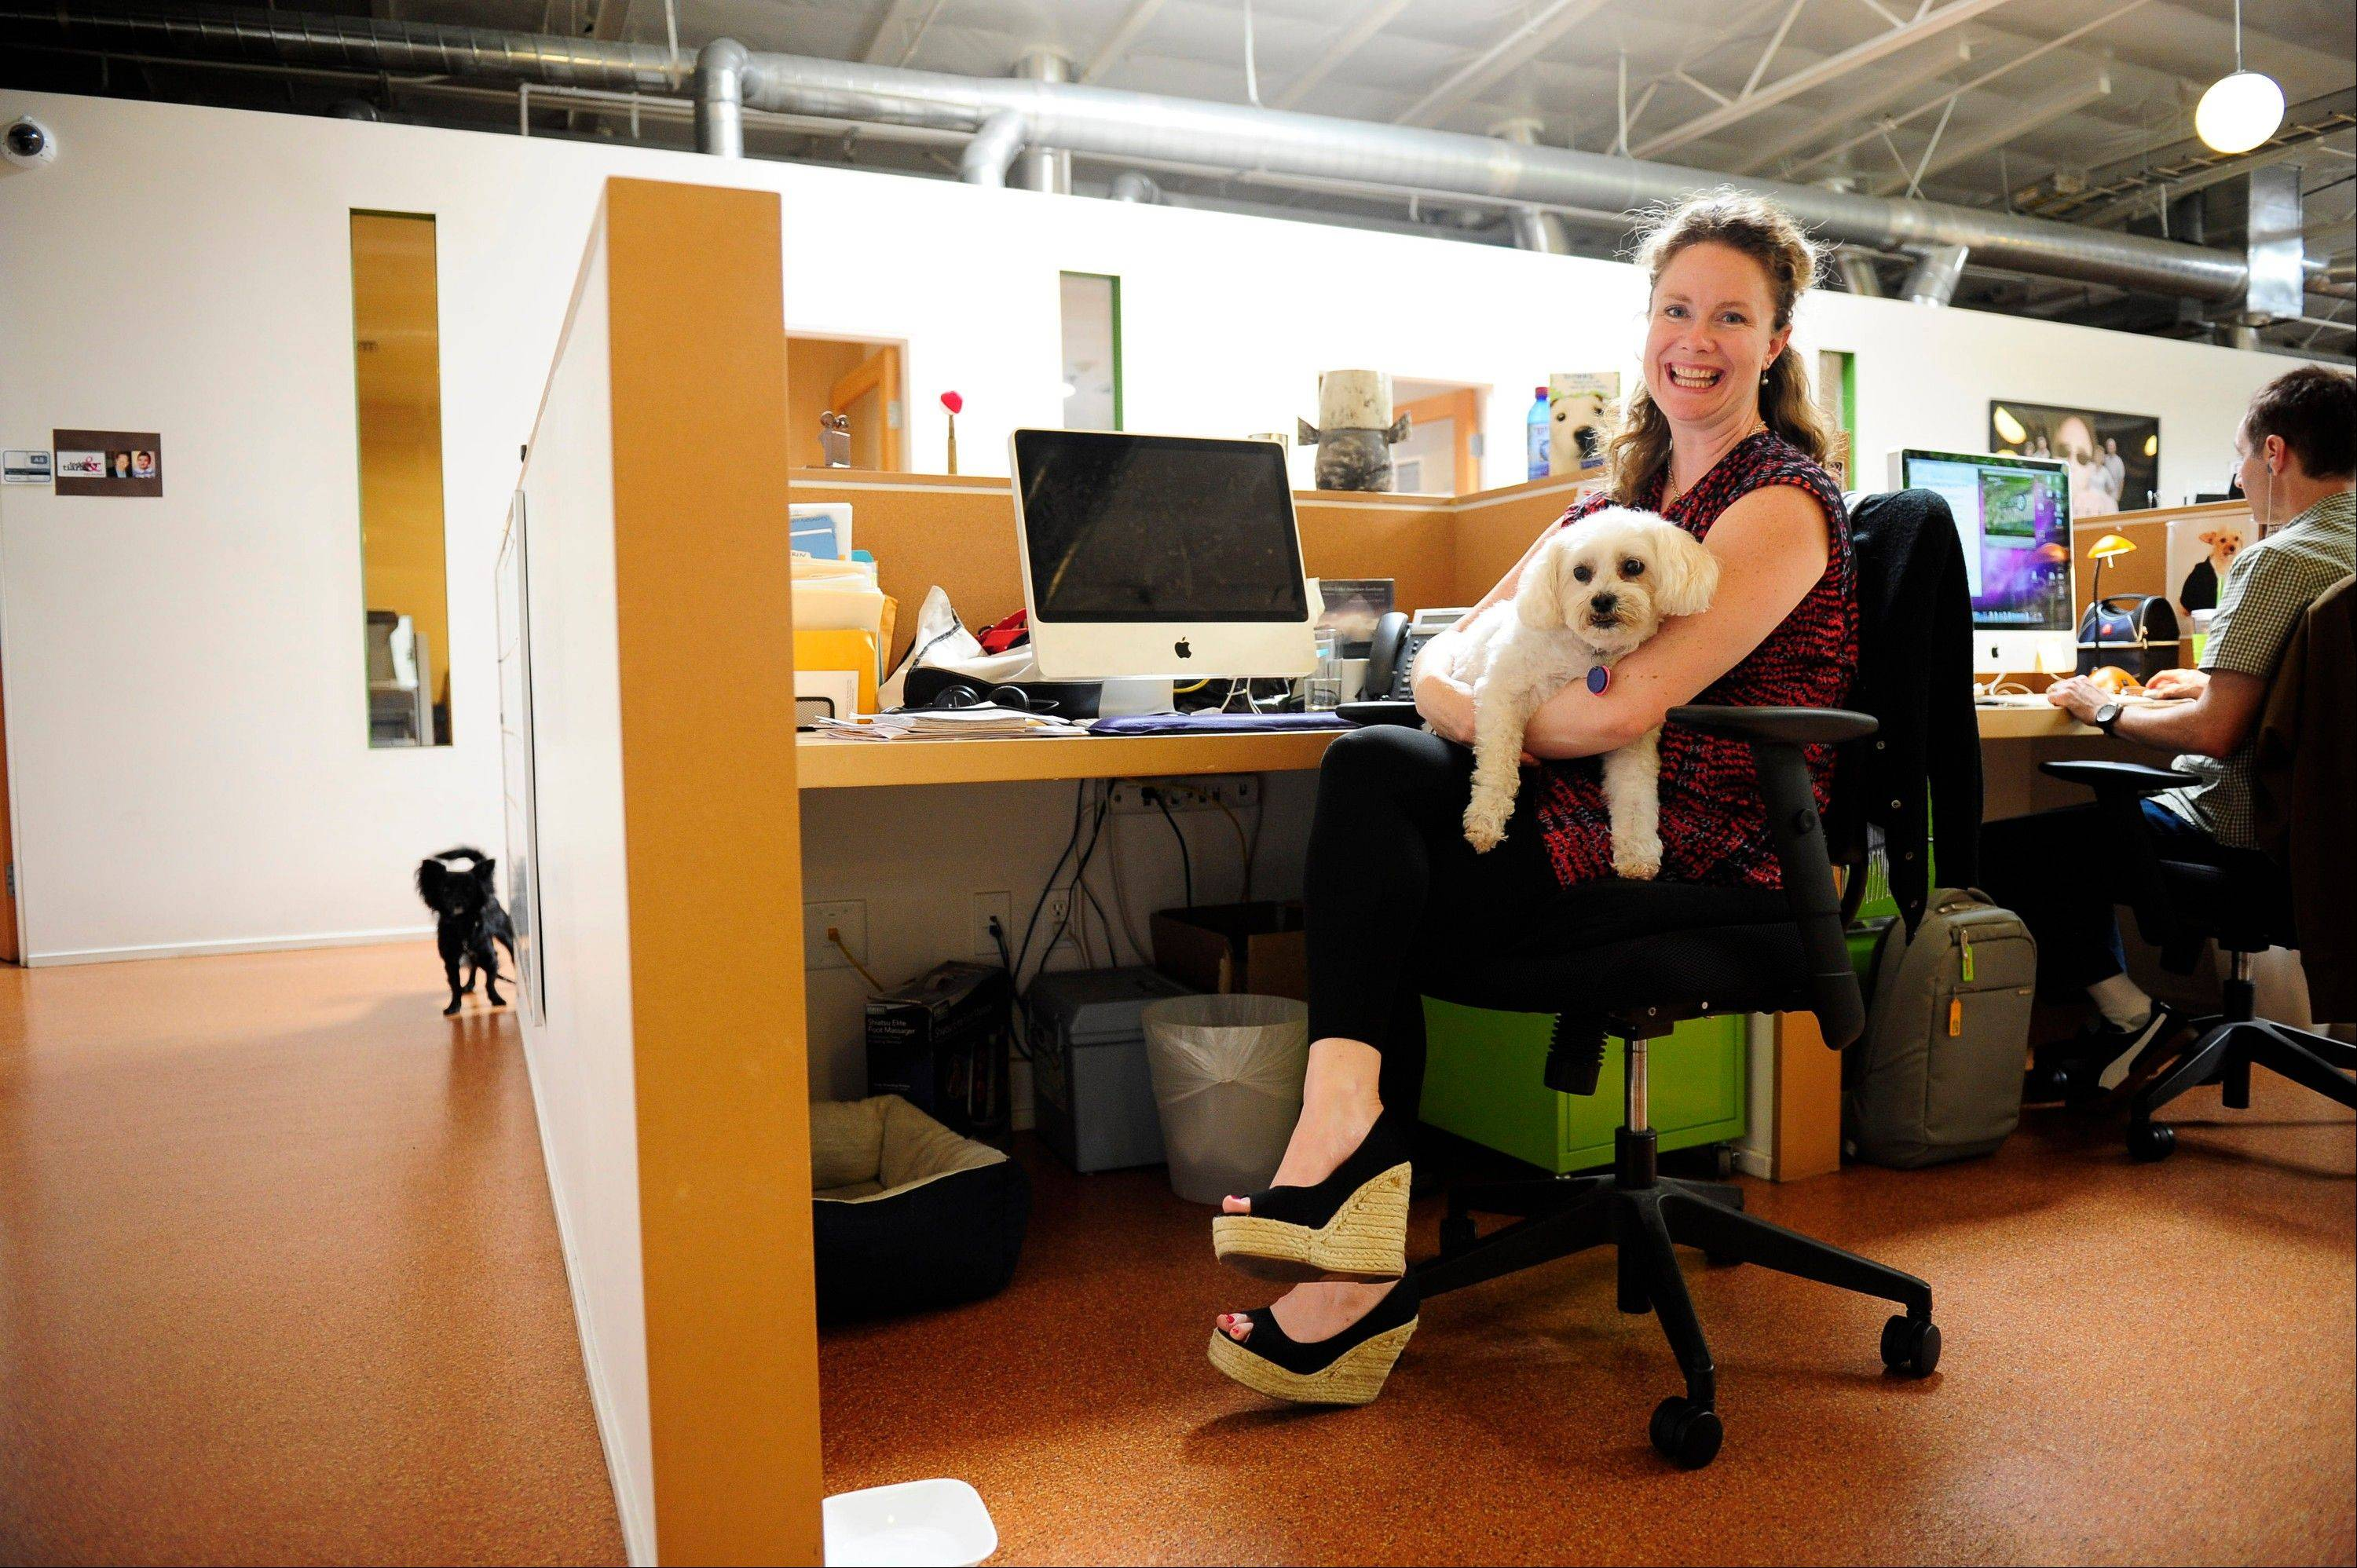 Erin McCormack poses with her dog, Dolly, a Maltese mix, a while at work at Authentic Entertainment in Burbank, Calif. Dolly is one of millions of dogs that accompany their owners to dog-friendly businesses across the country every day. Even more will join her next Friday for Take Your Dog to Work Day.